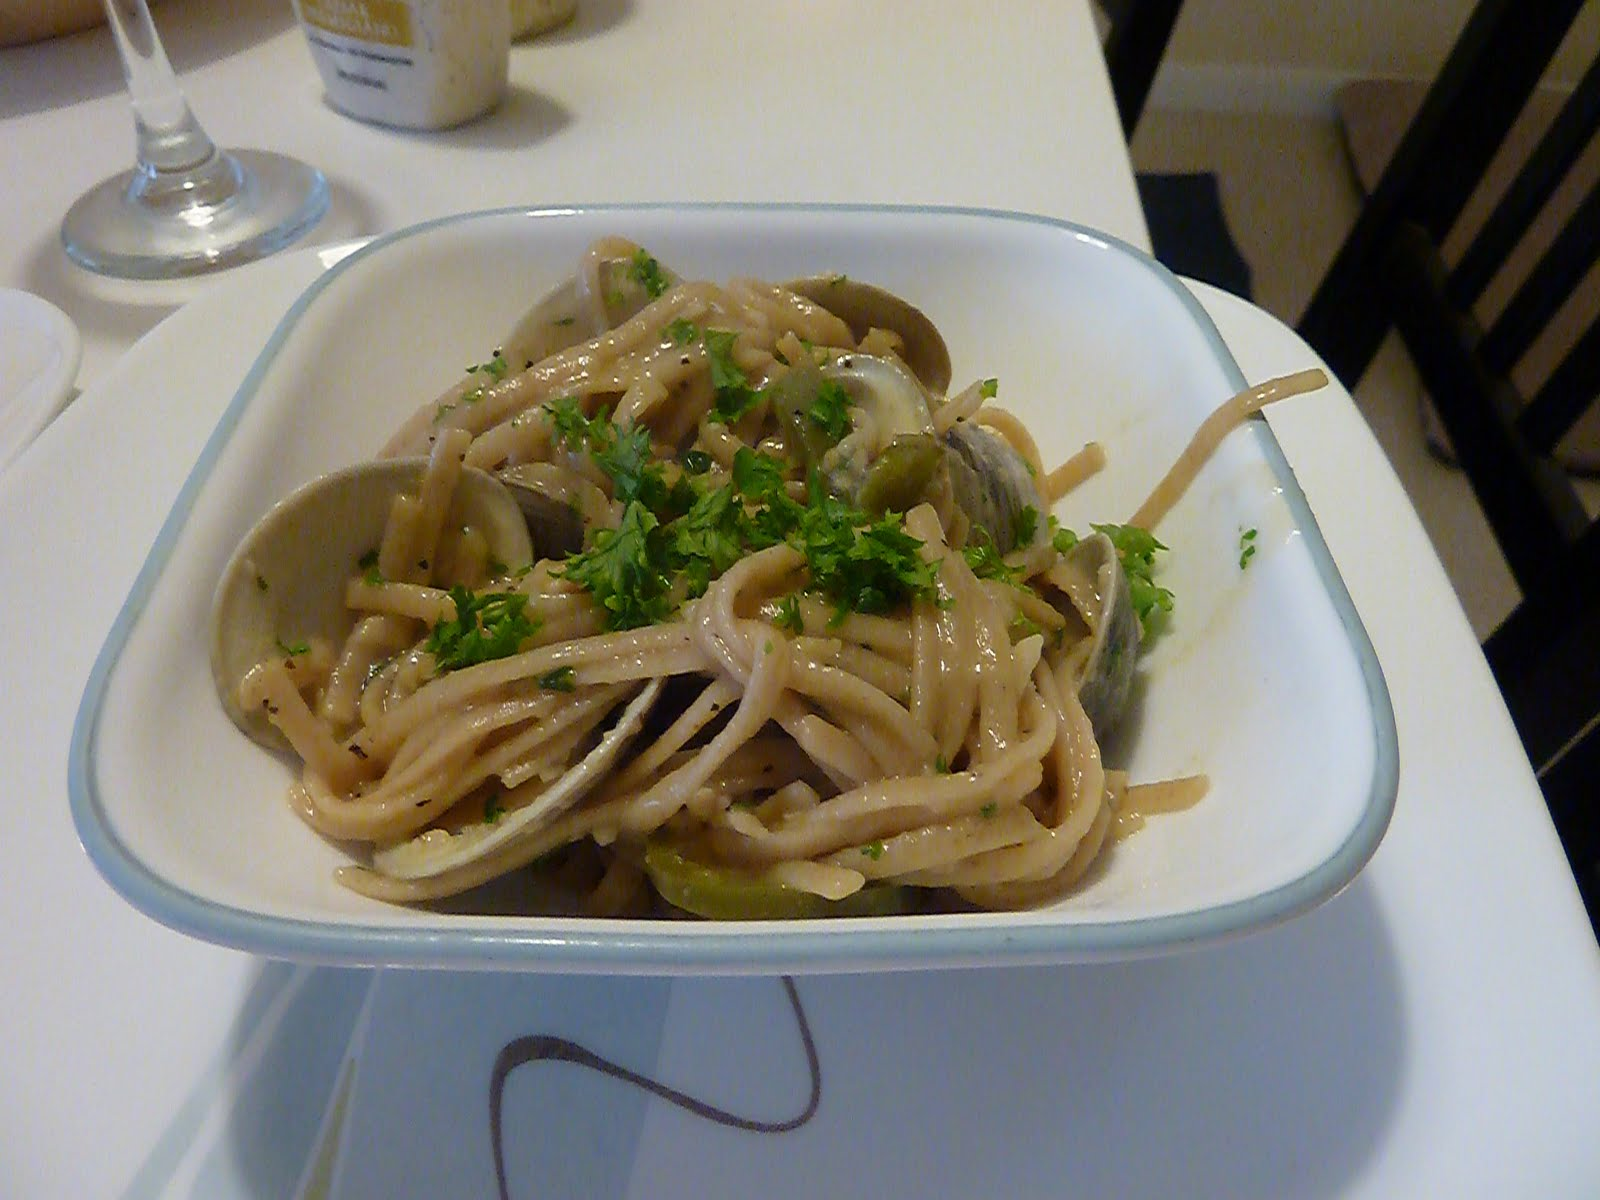 ... Flying Bread Machine: Spicy Whole Wheat Spaghetti and Drunken Clams